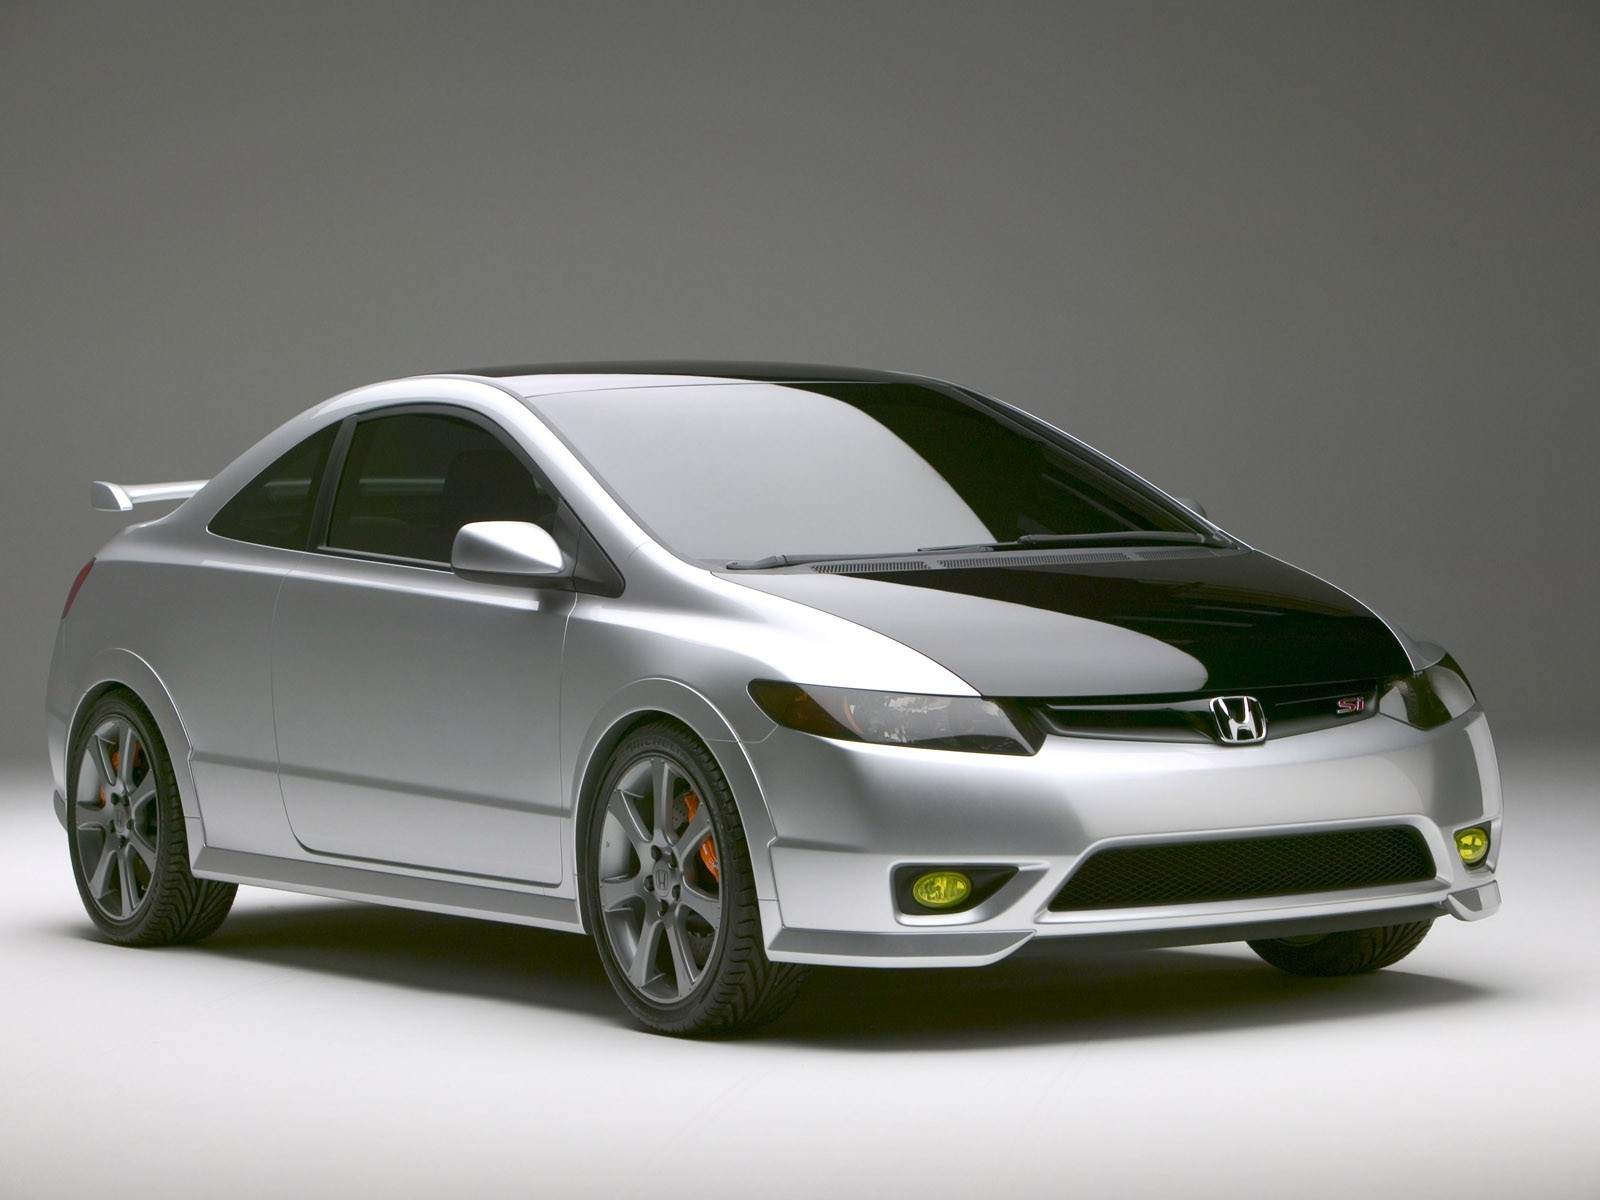 Honda Civic Wallpapers 1920x1080 Free Download My Site